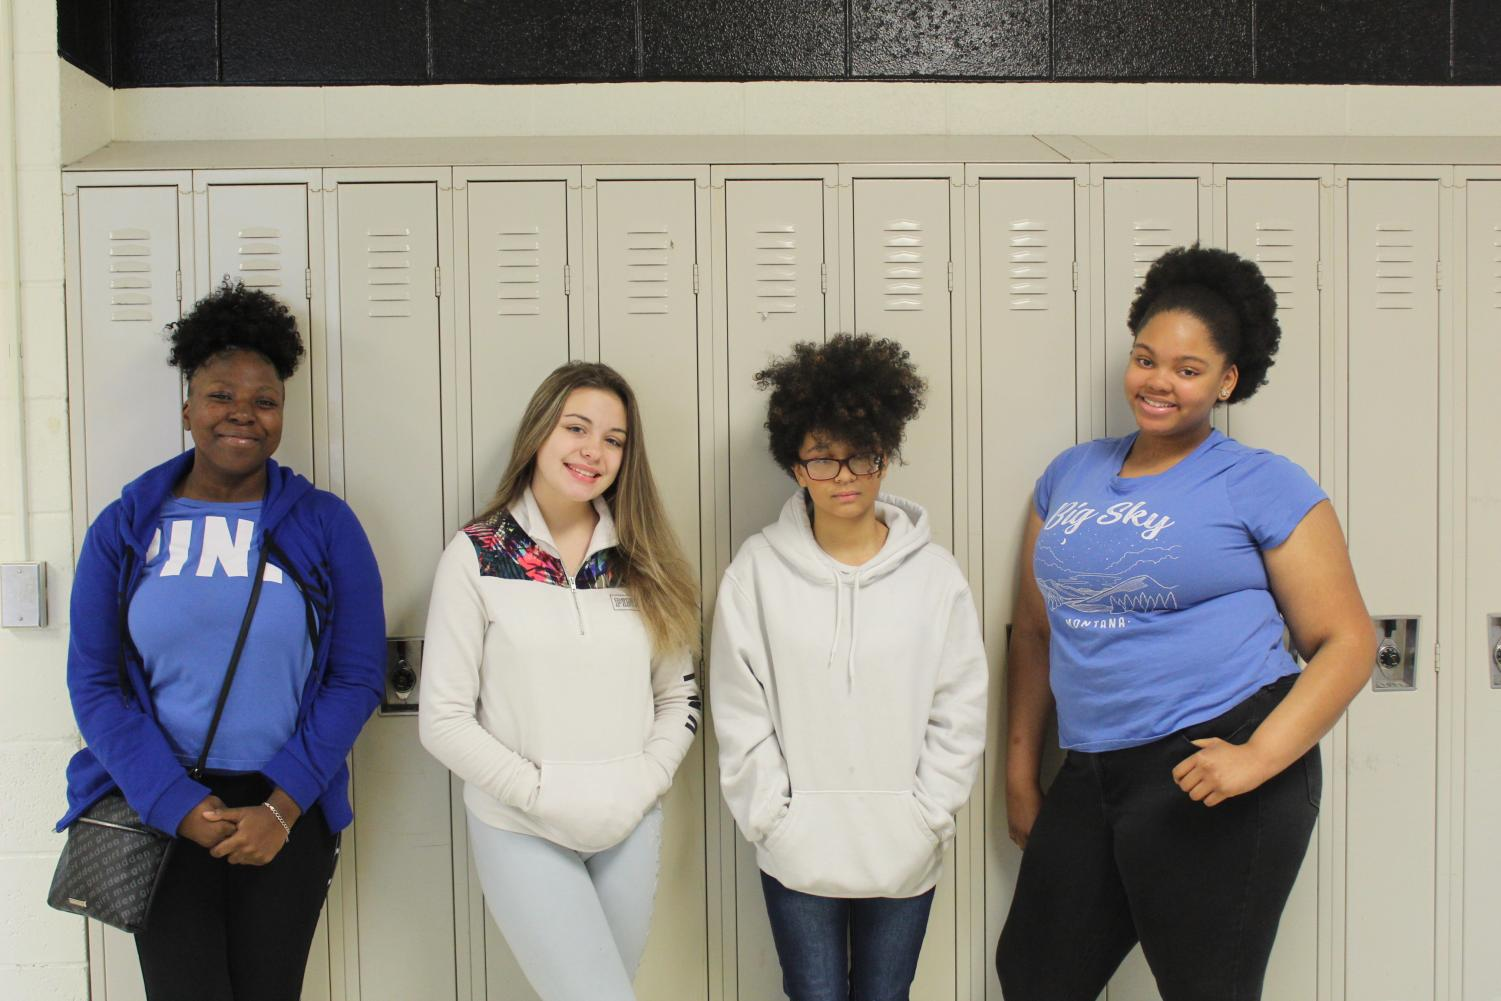 Students show holiday spirit by wearing blue and white.